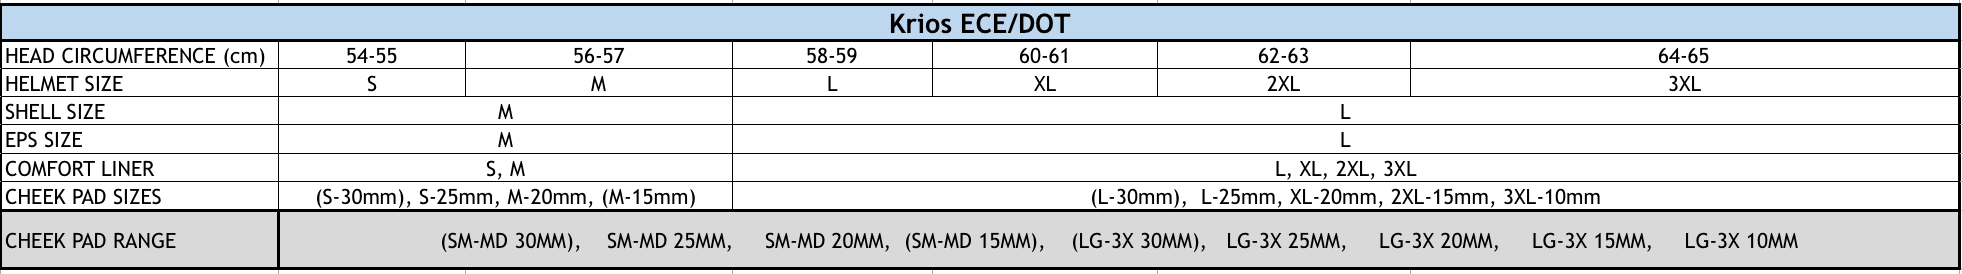 Krios Size Chart